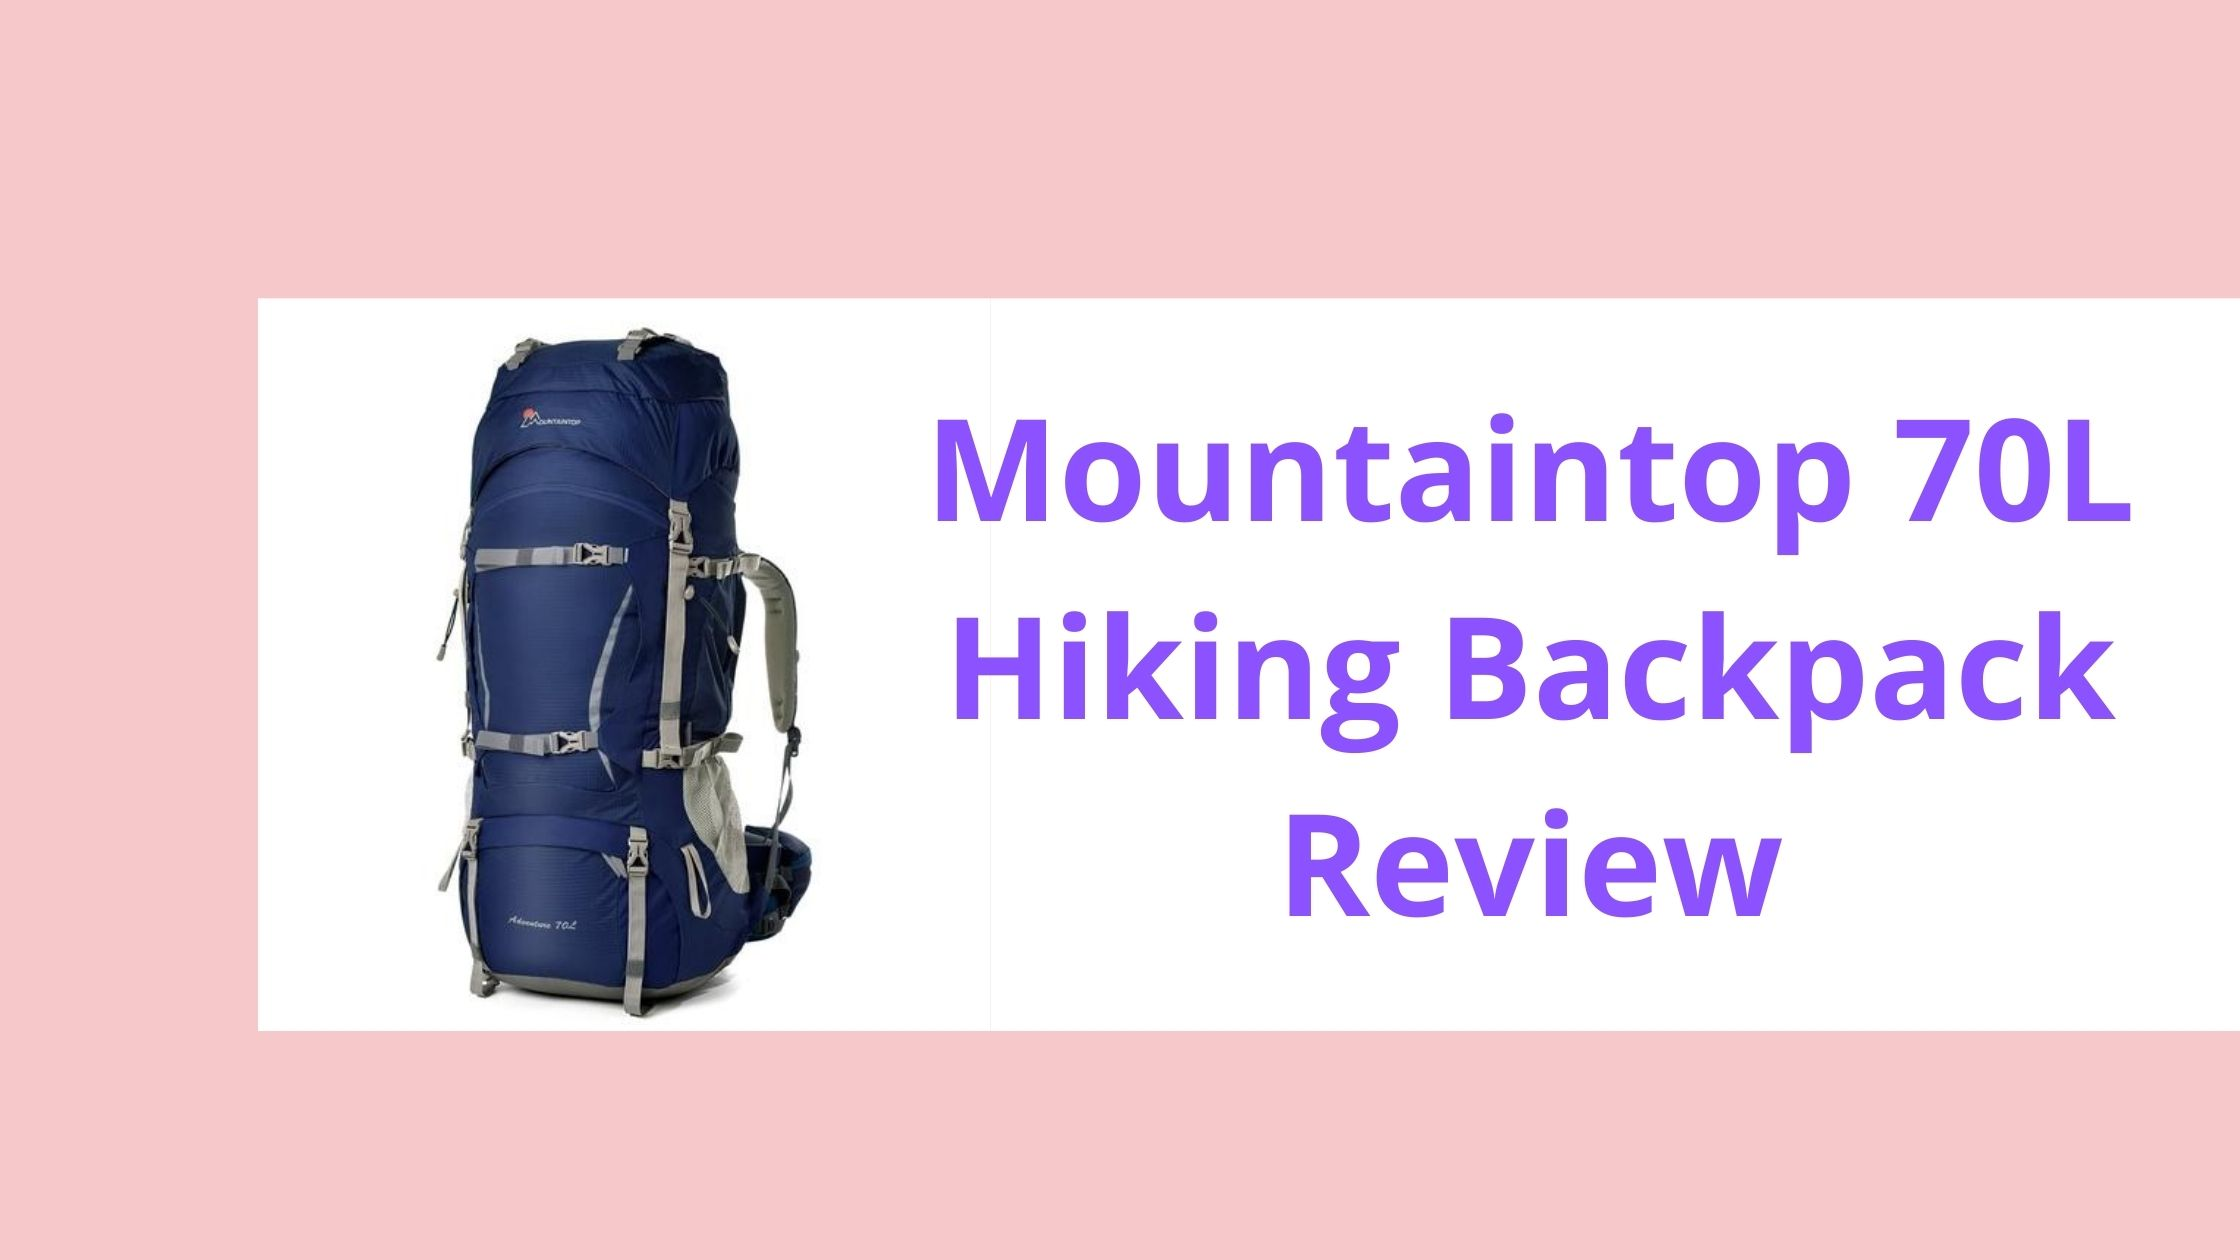 Mountaintop 70L Hiking Backpack Review